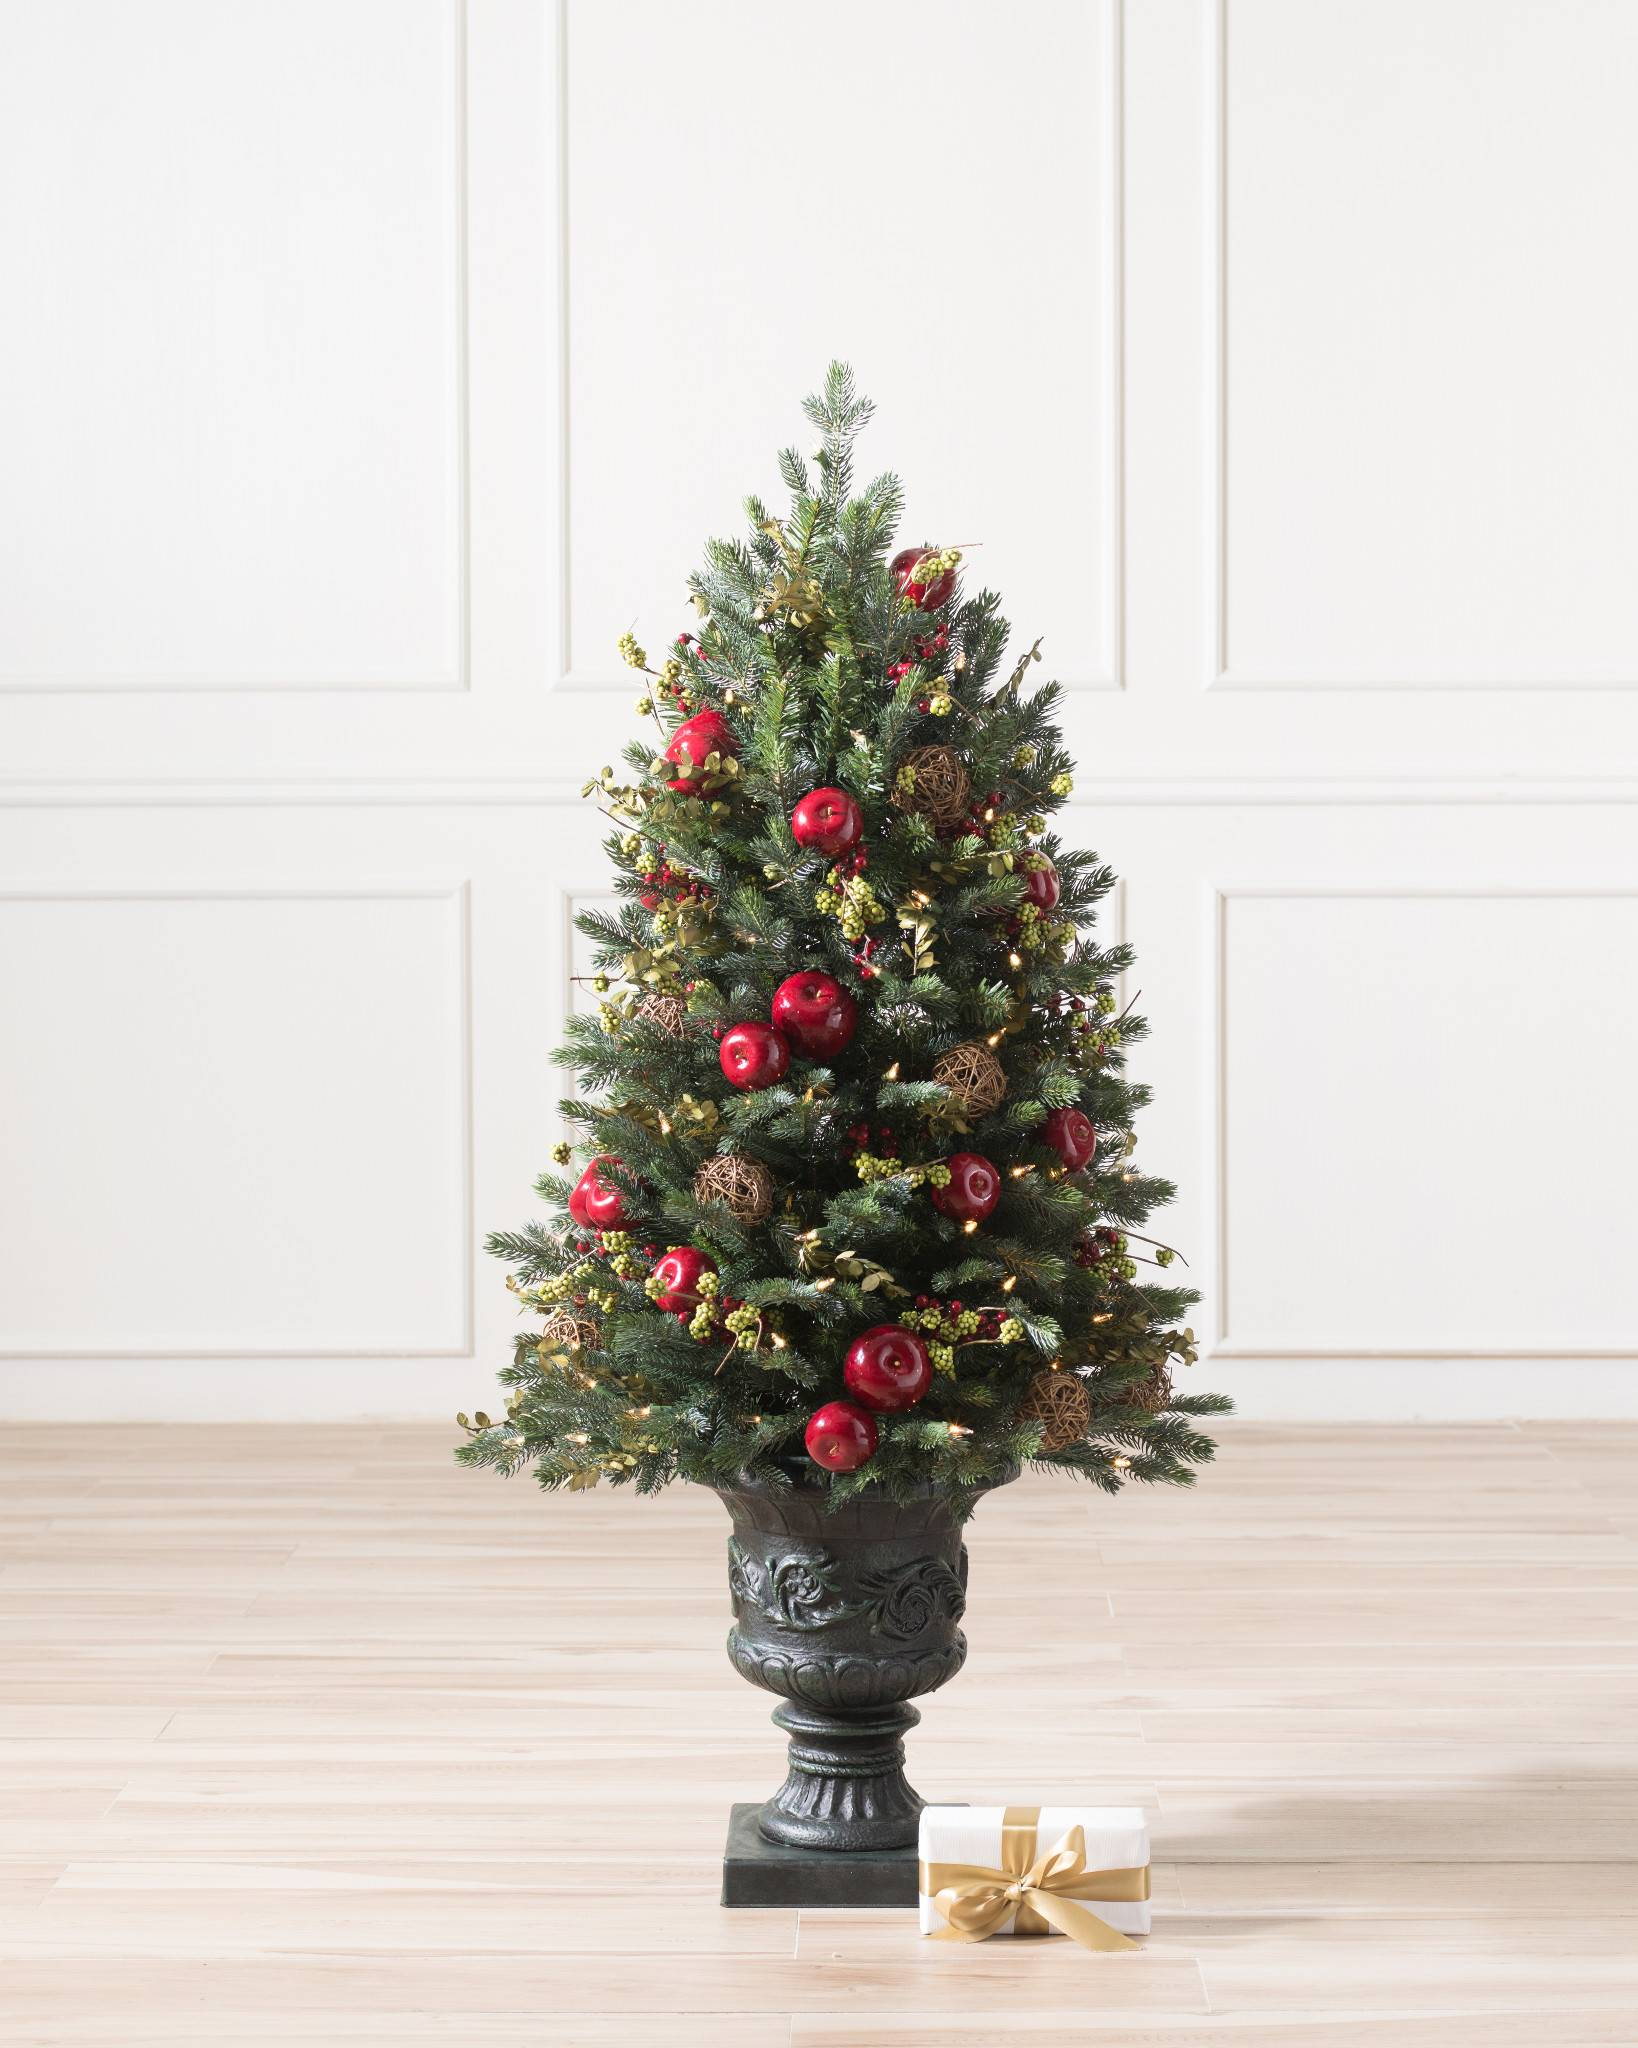 Tabletop ornament tree - Norway Spruce Holiday Potted Tree From Balsam Hill